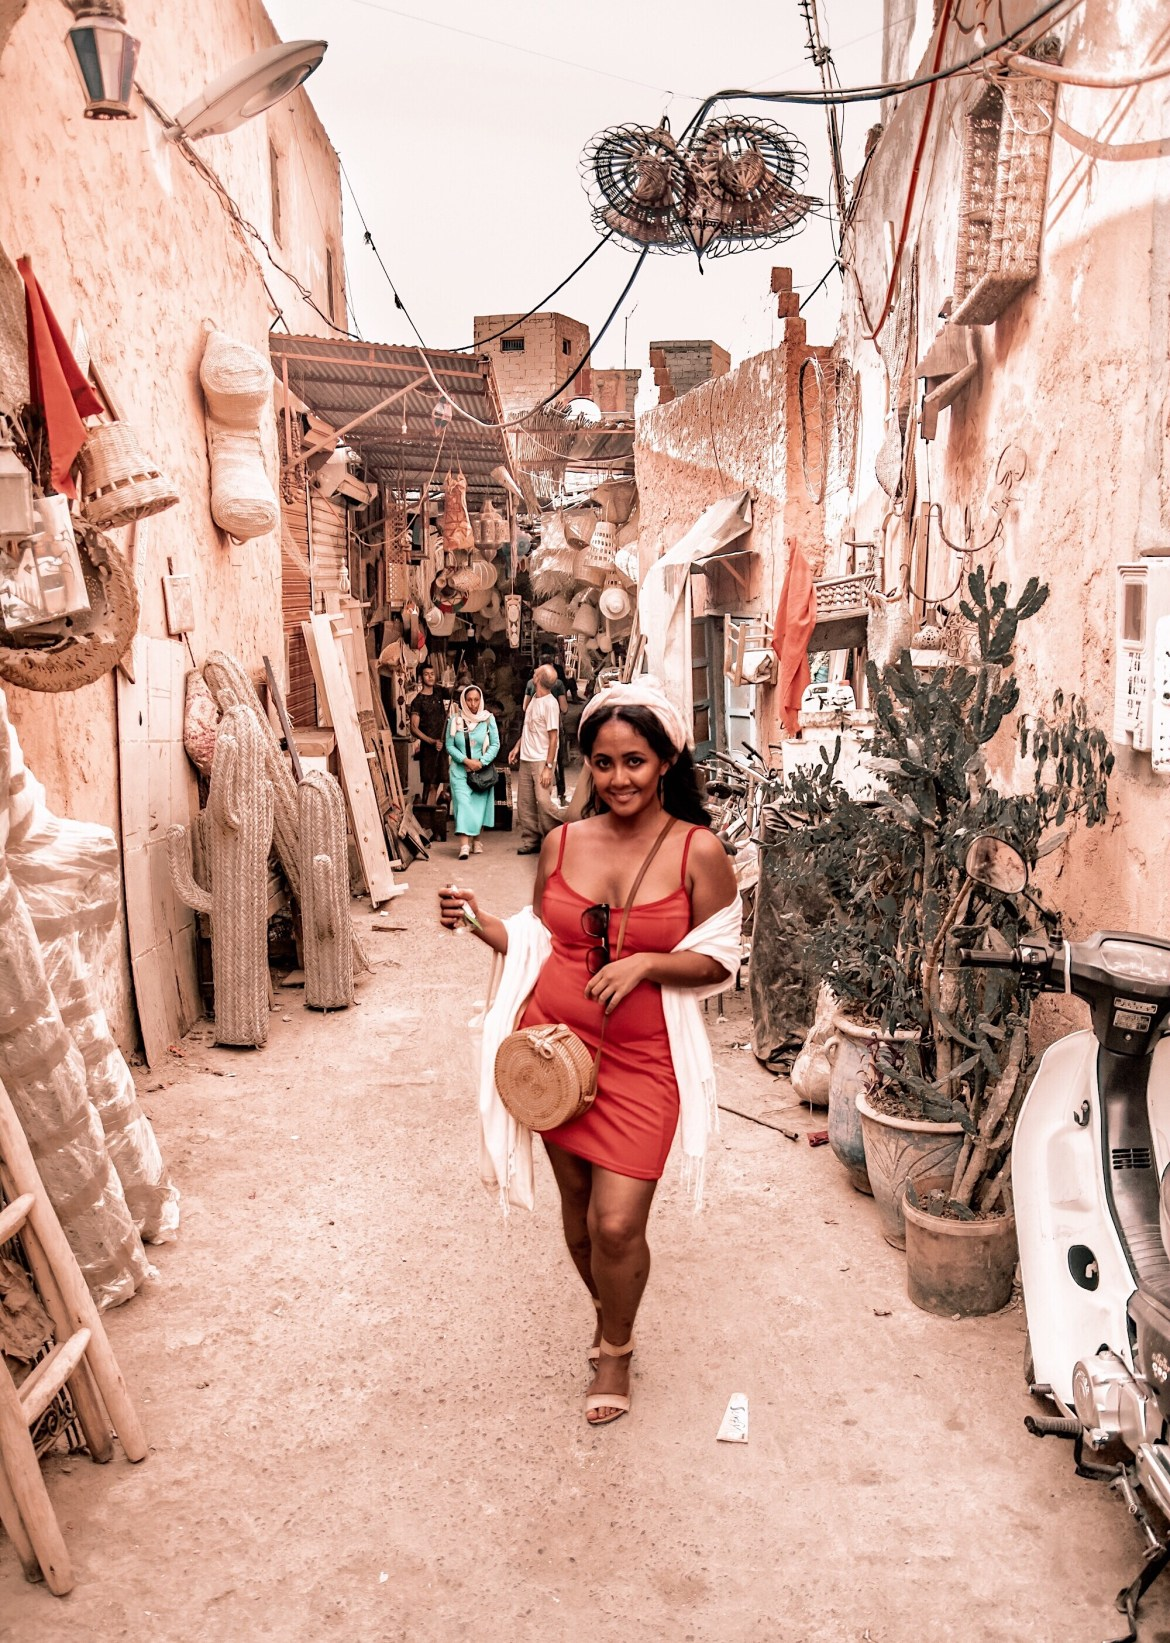 What-Color-Shoes-To-Wear-With-A-Red-Dress-How-To-Wear-A-Summer-Red-Dress-What-To-Wear-In-Morocco-Marrakech-Paris-Chic-Style-6